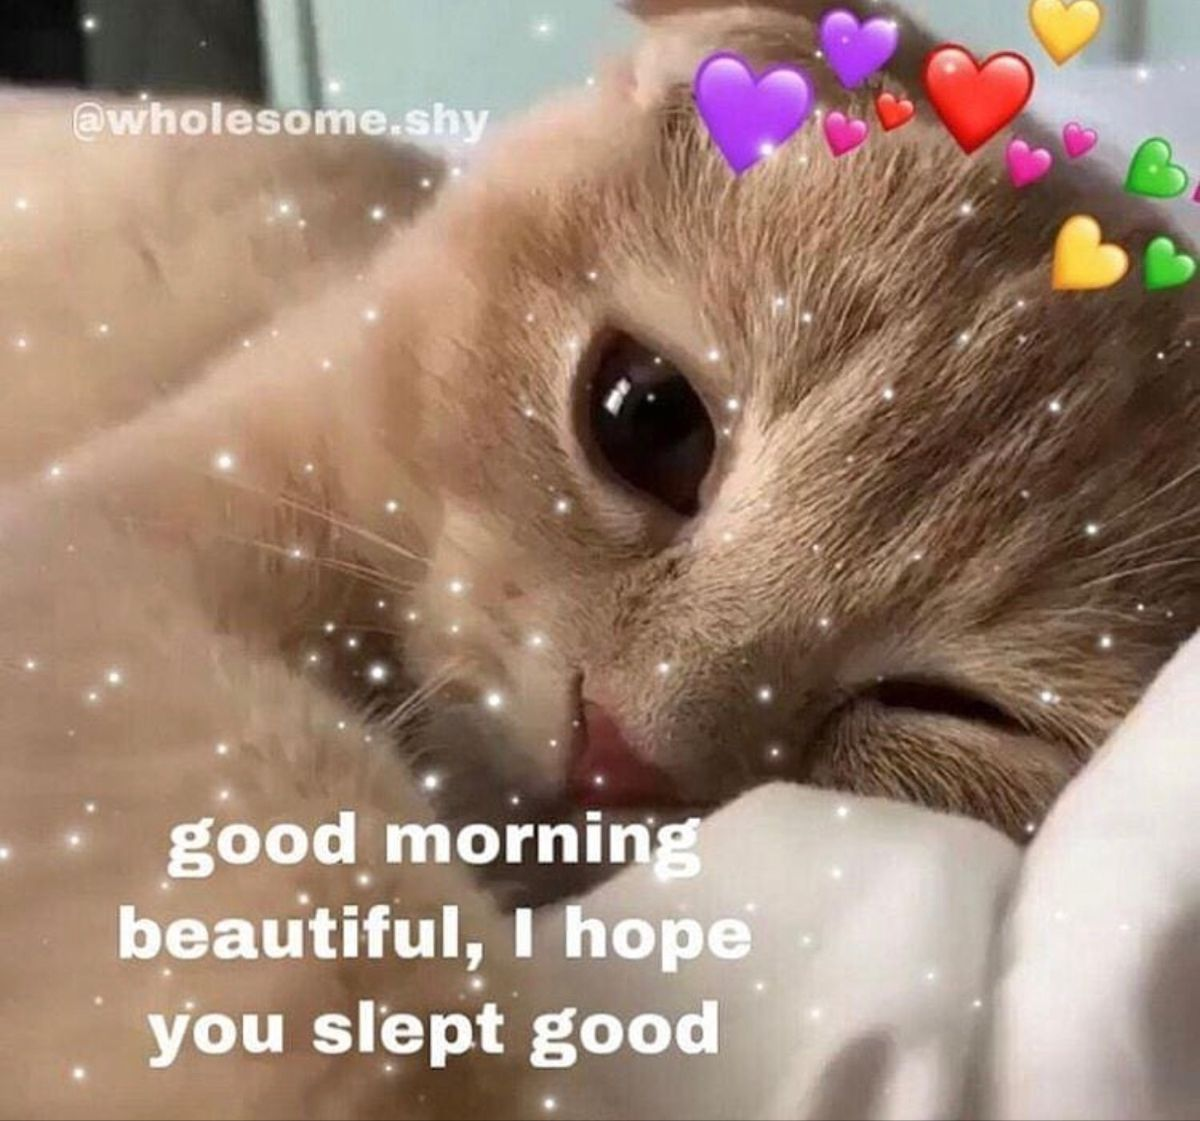 Pin By Amanda Houghton On Wholesome Memes Cute Love Memes Cute Memes Cute Cat Memes